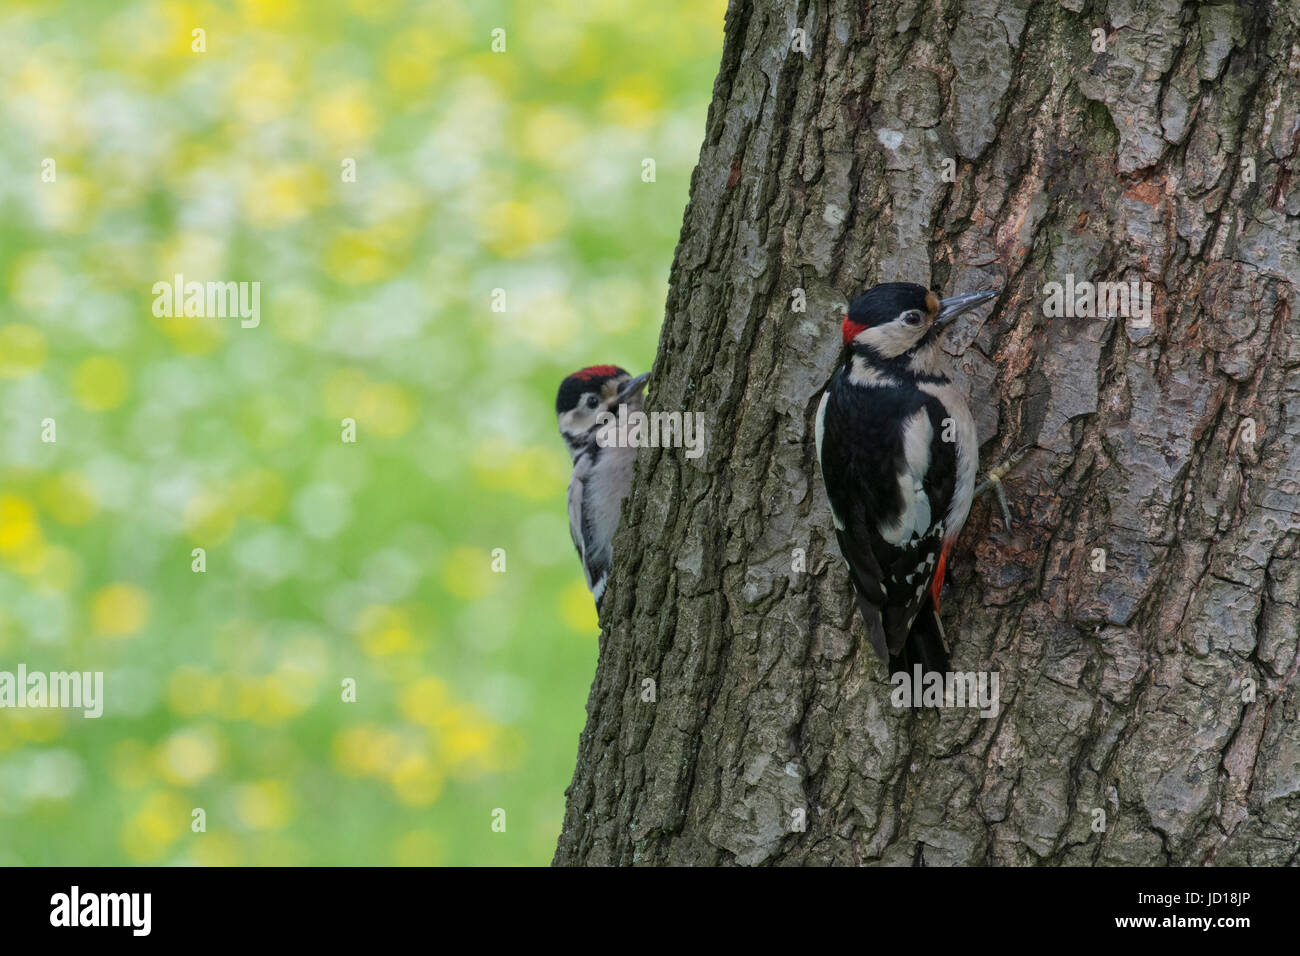 Great Spotted Woodpeckers - Stock Image